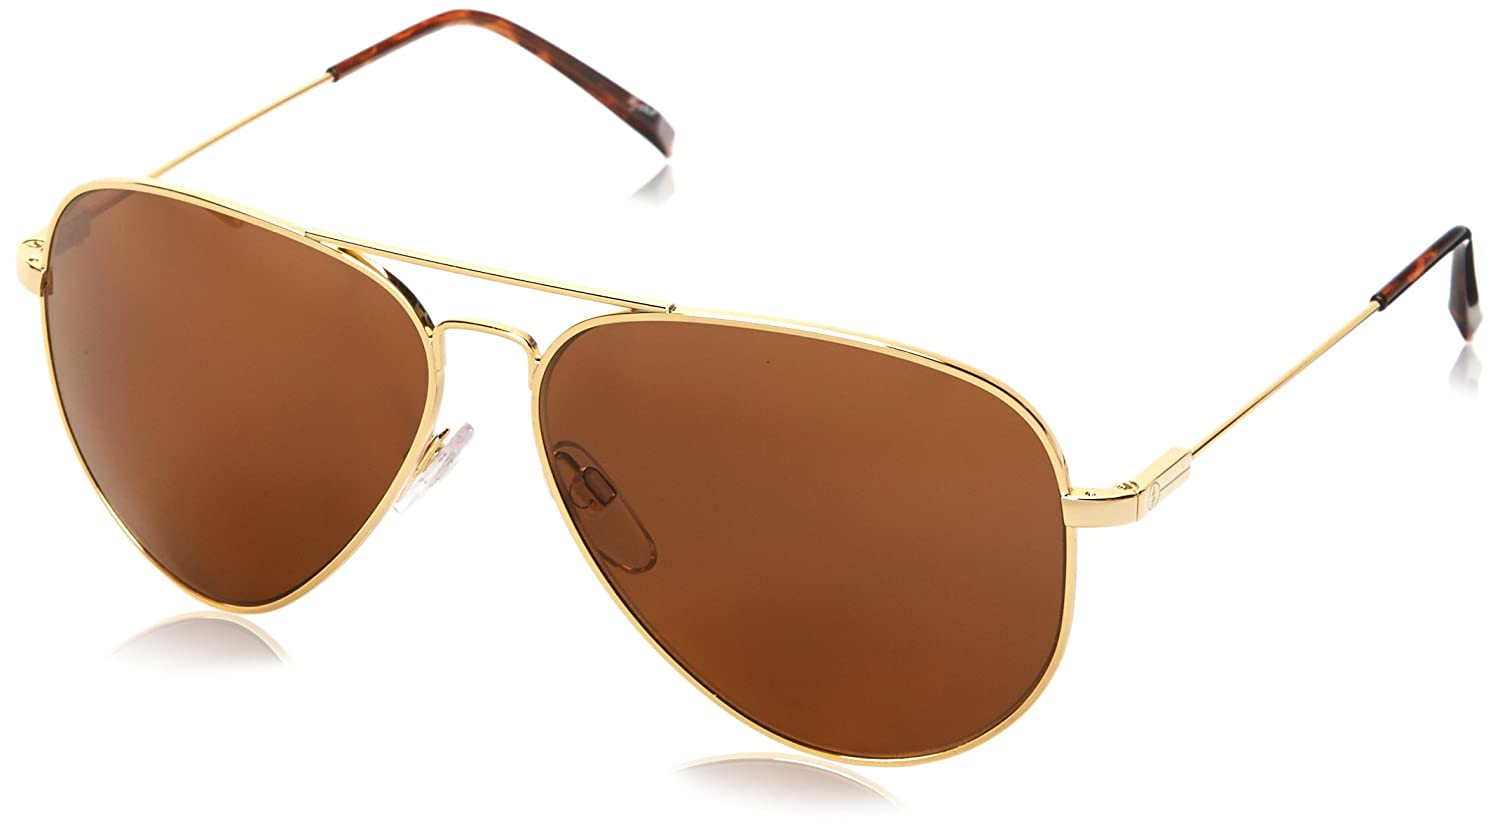 Oro / Bronce AV1 XL Gafas de sol de Electric California ...